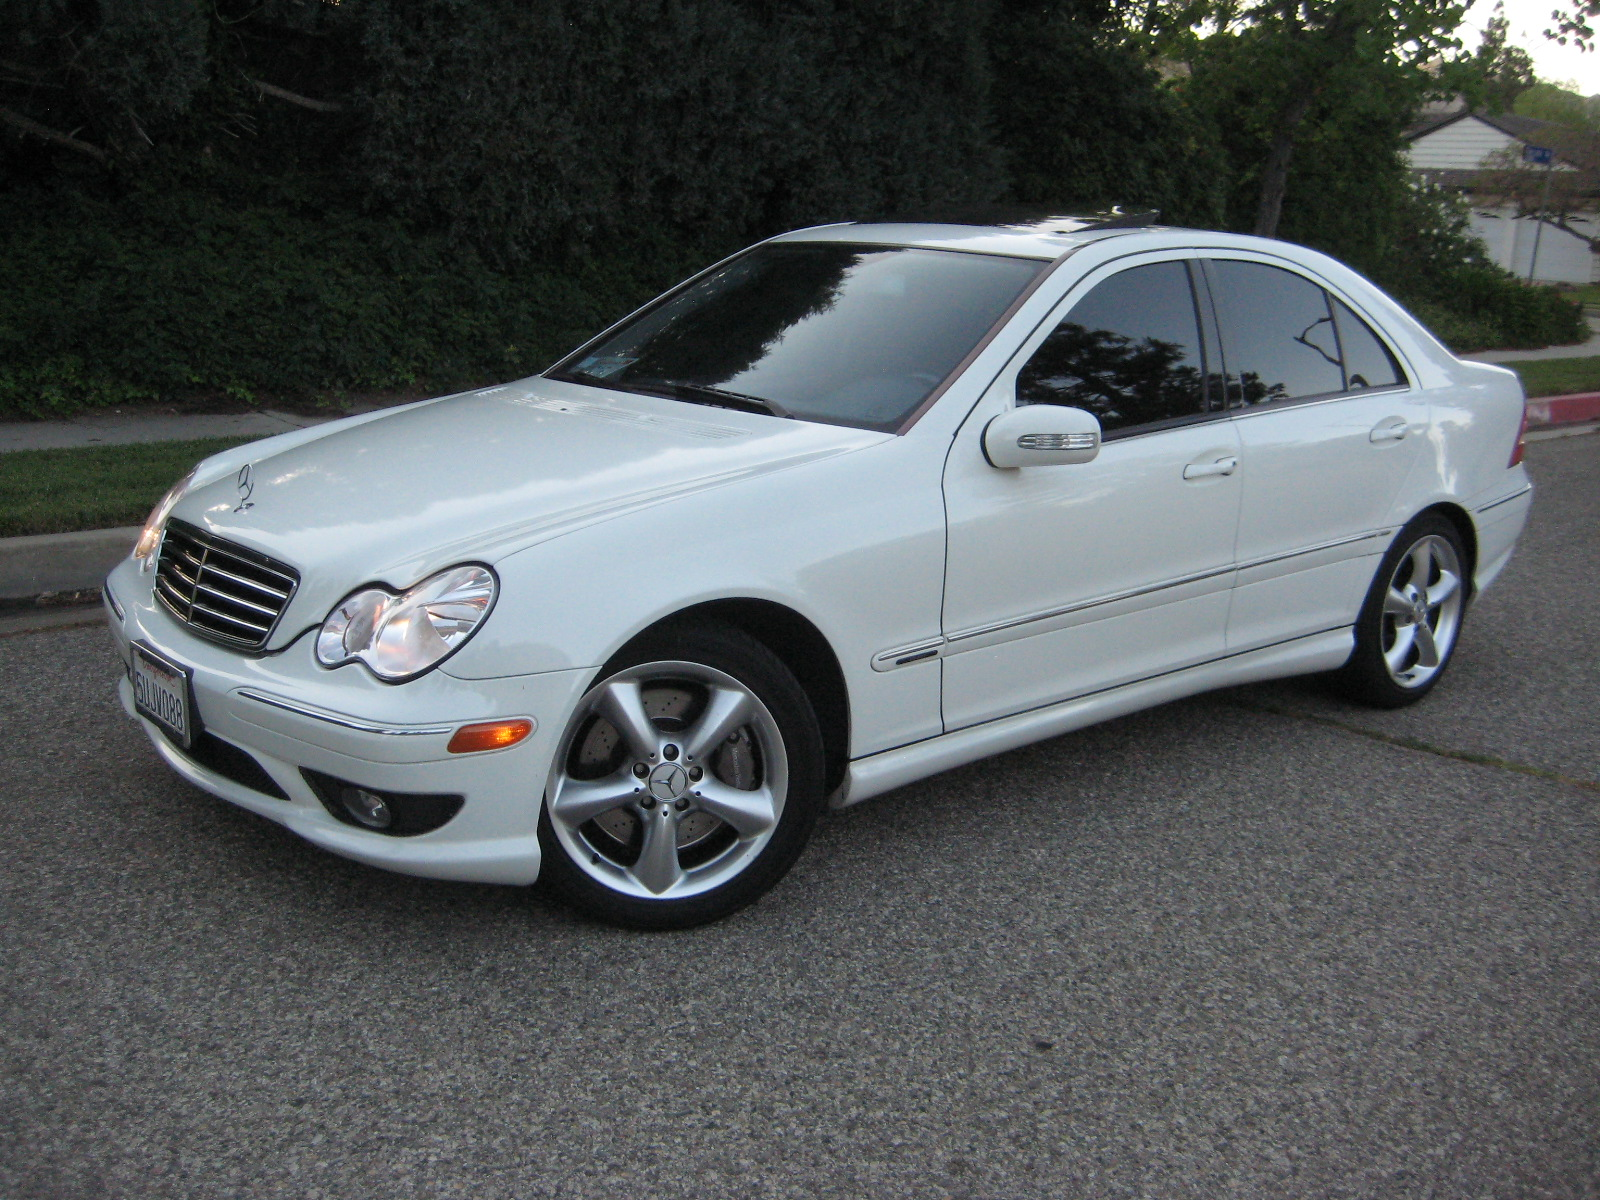 2006 mercedes benz c class exterior pictures cargurus for Mercedes benz 2006 c230 sport